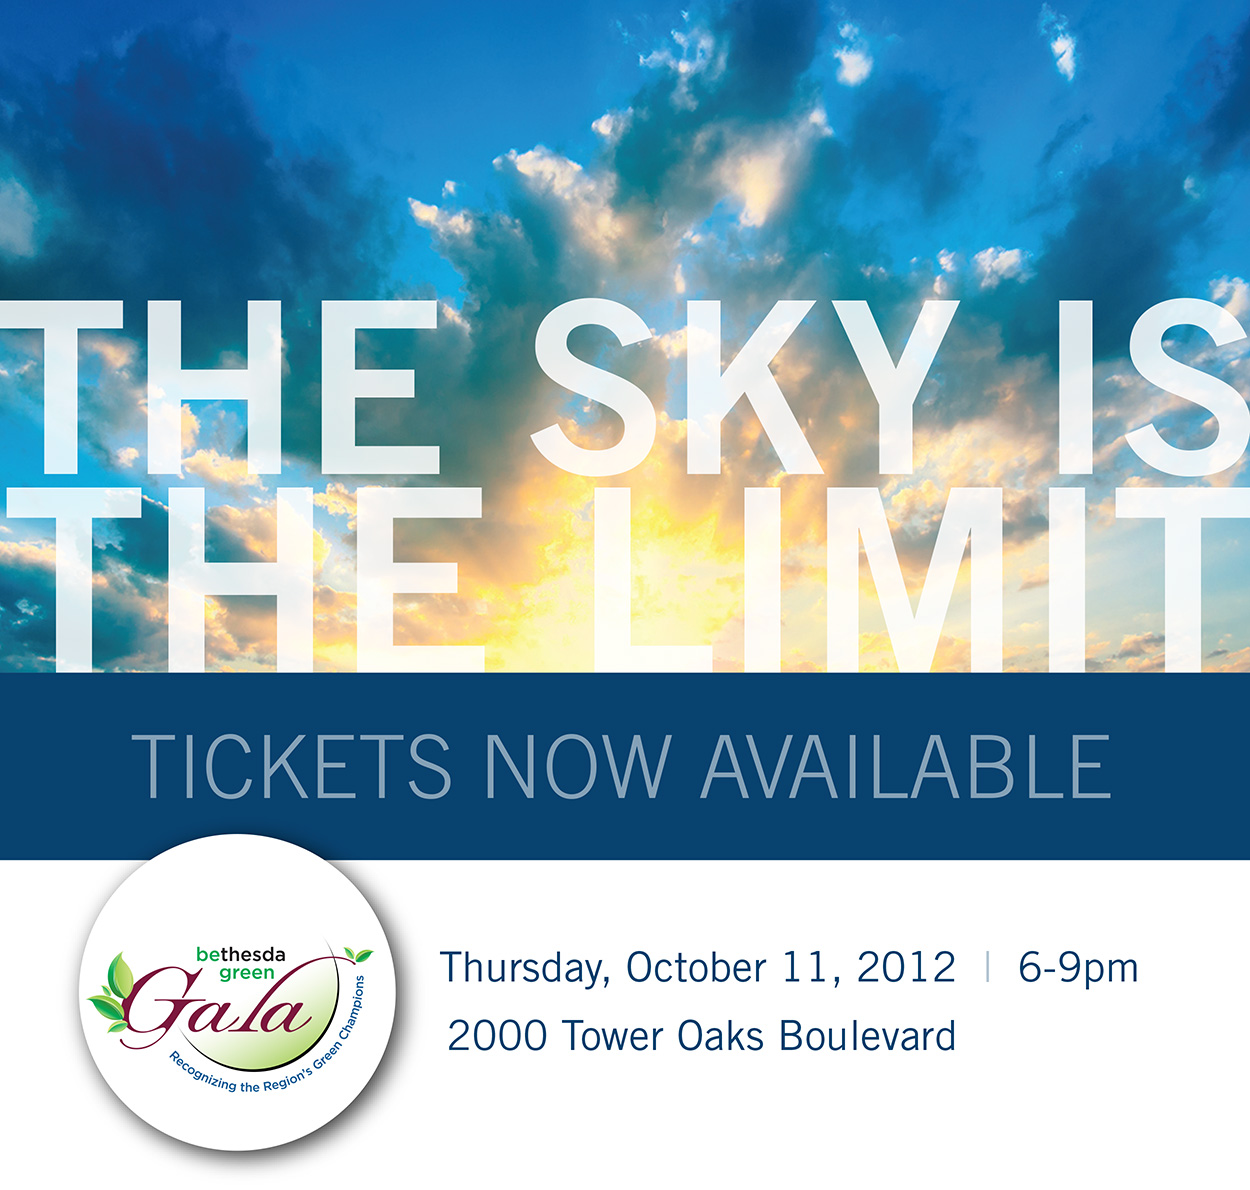 the sky s the limit bethesda green gala bethesda green